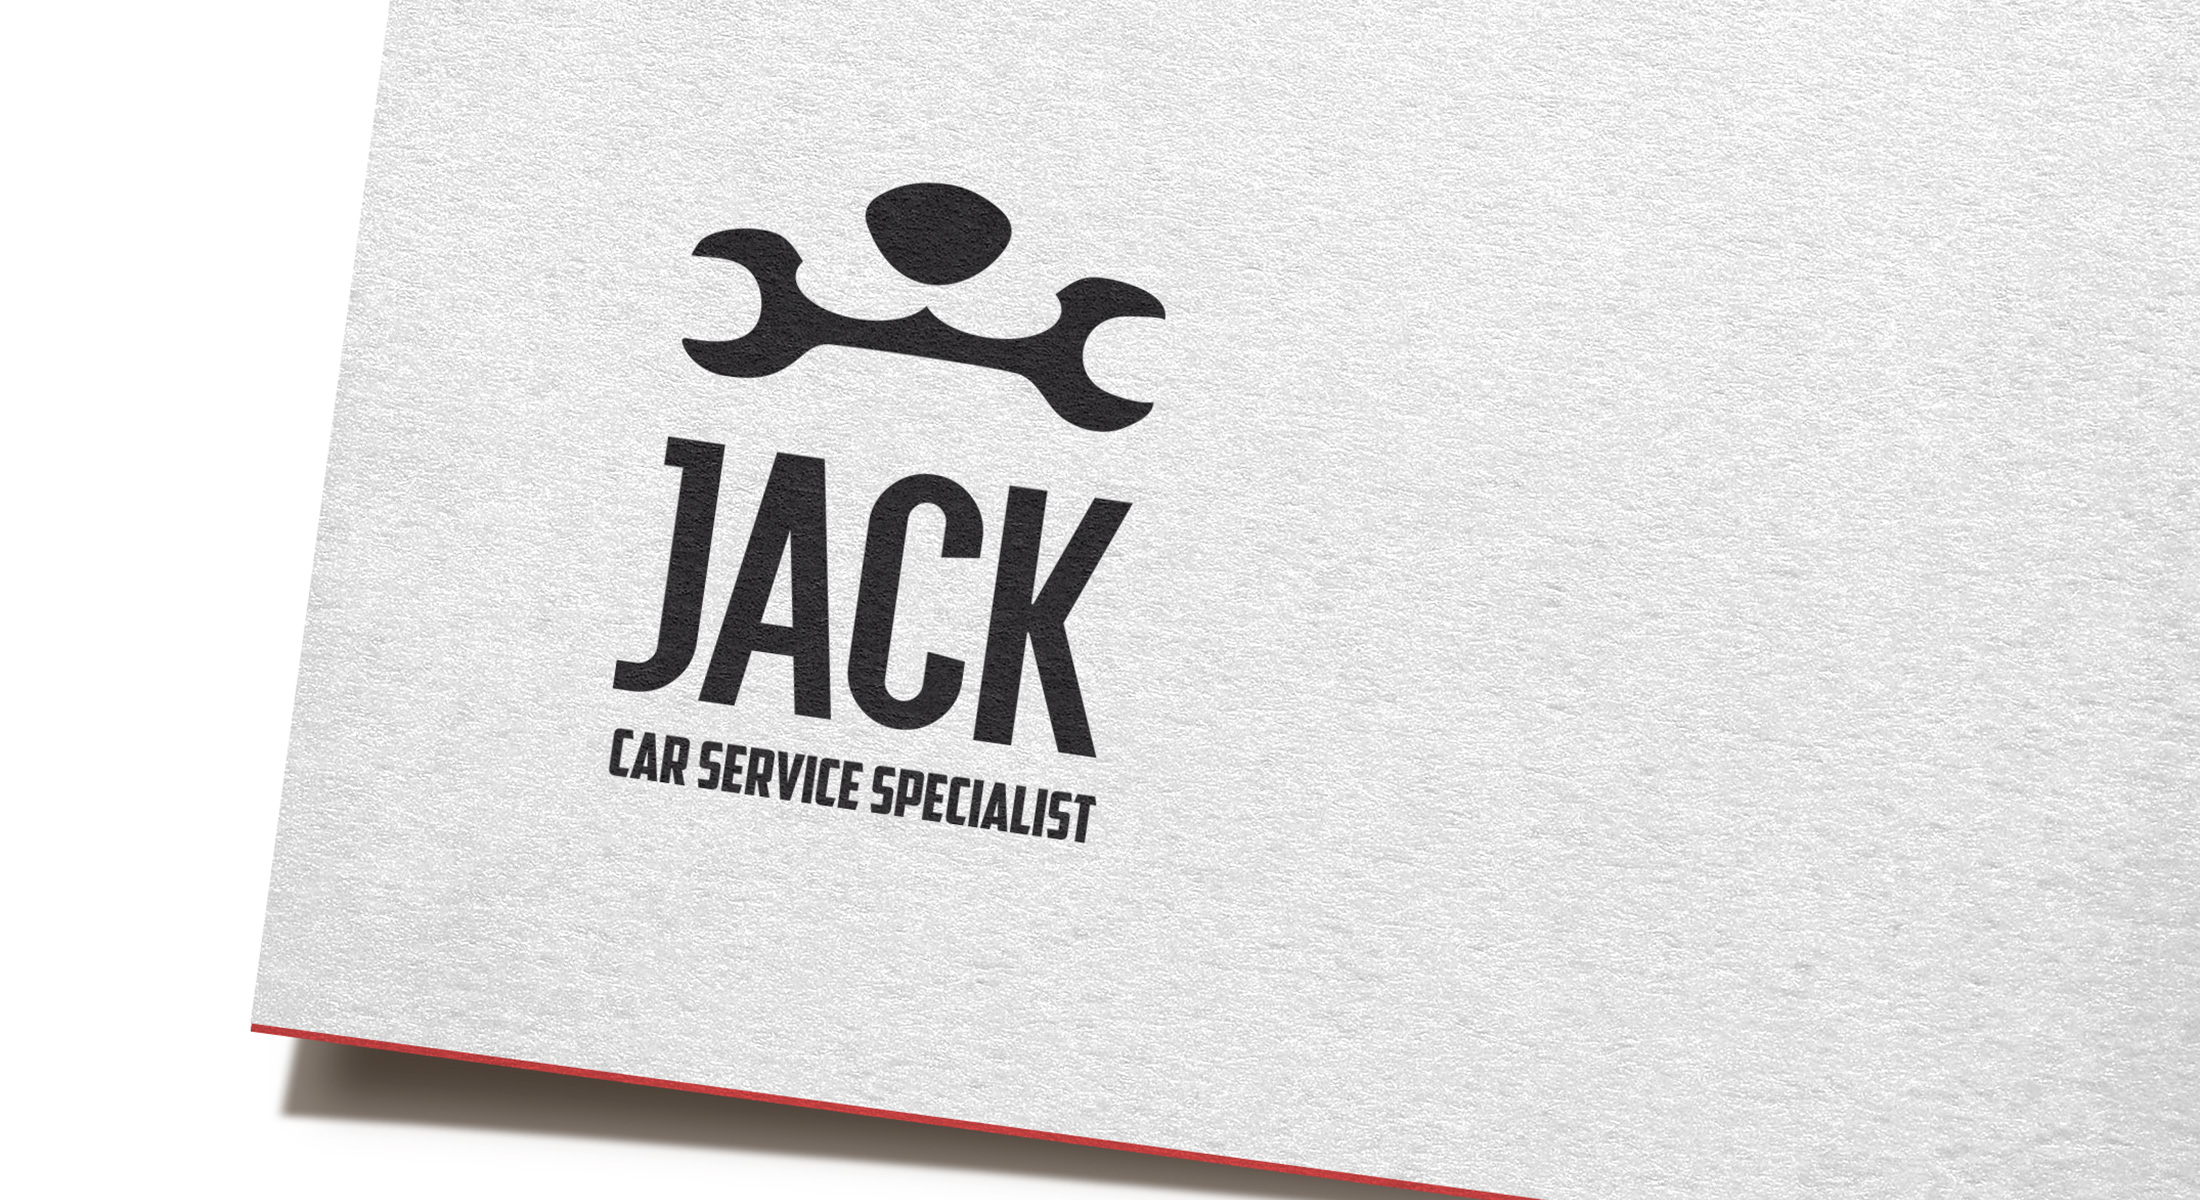 logo design printed on laminated business card